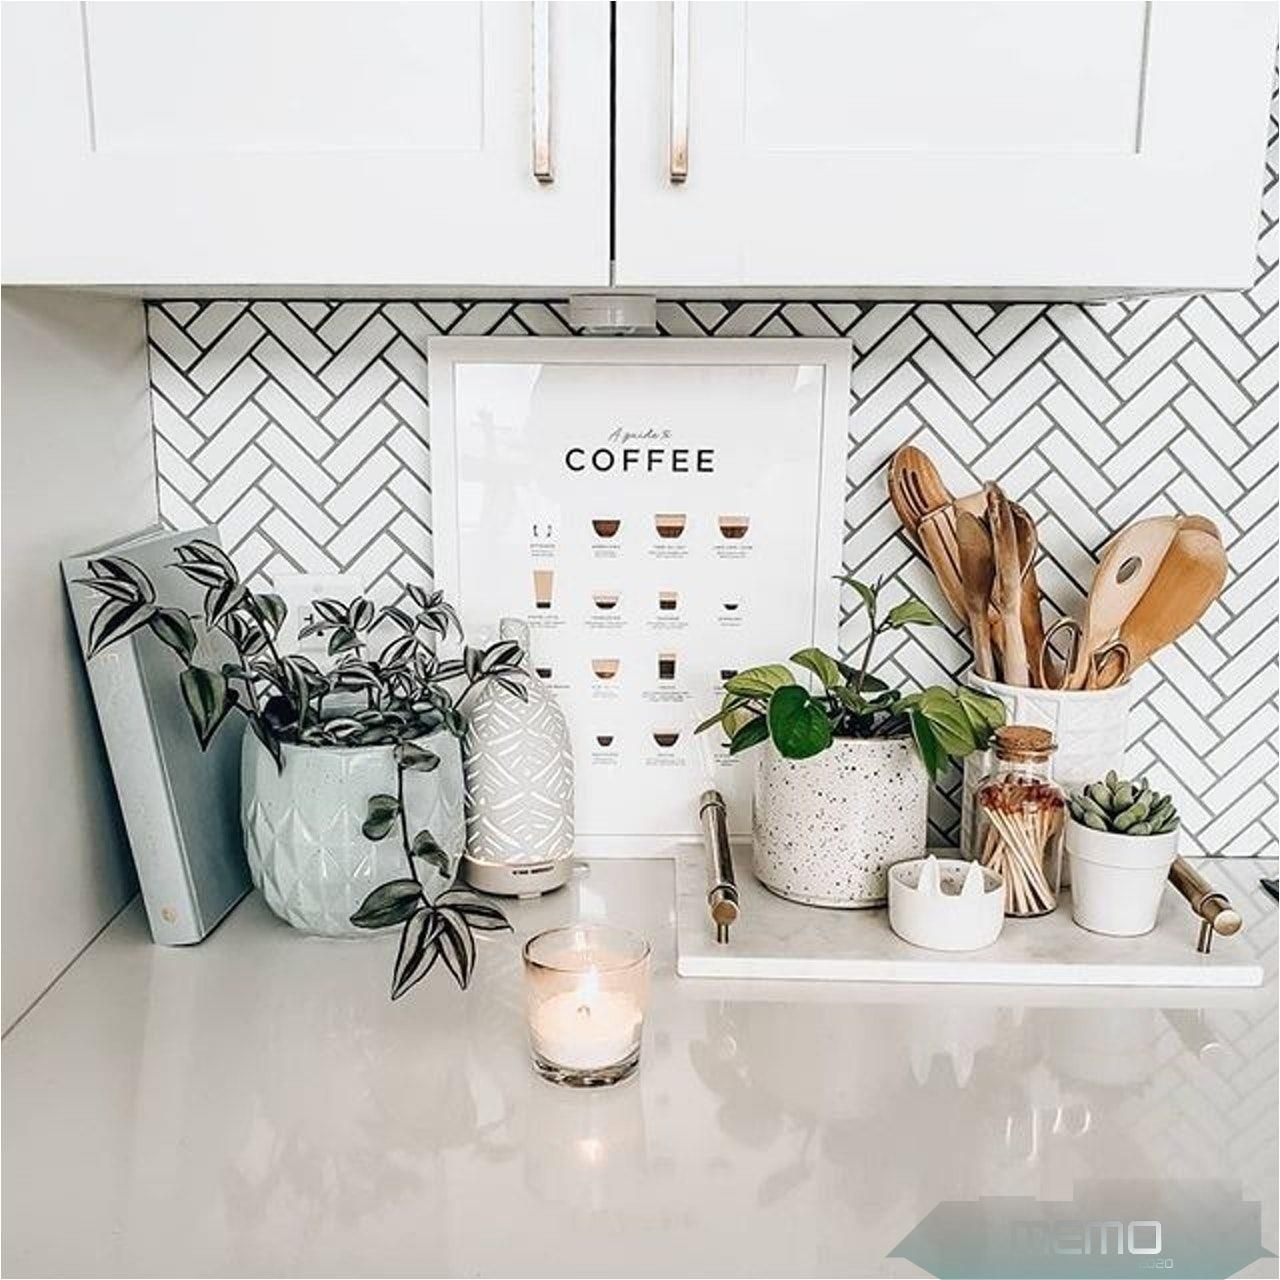 May 30 2020 This Pin Was Discovered By Franzi Discover And Save Your Own Pins On Pinterest Kitc Counter Decor Kitchen Counter Decor Small Kitchen Decor